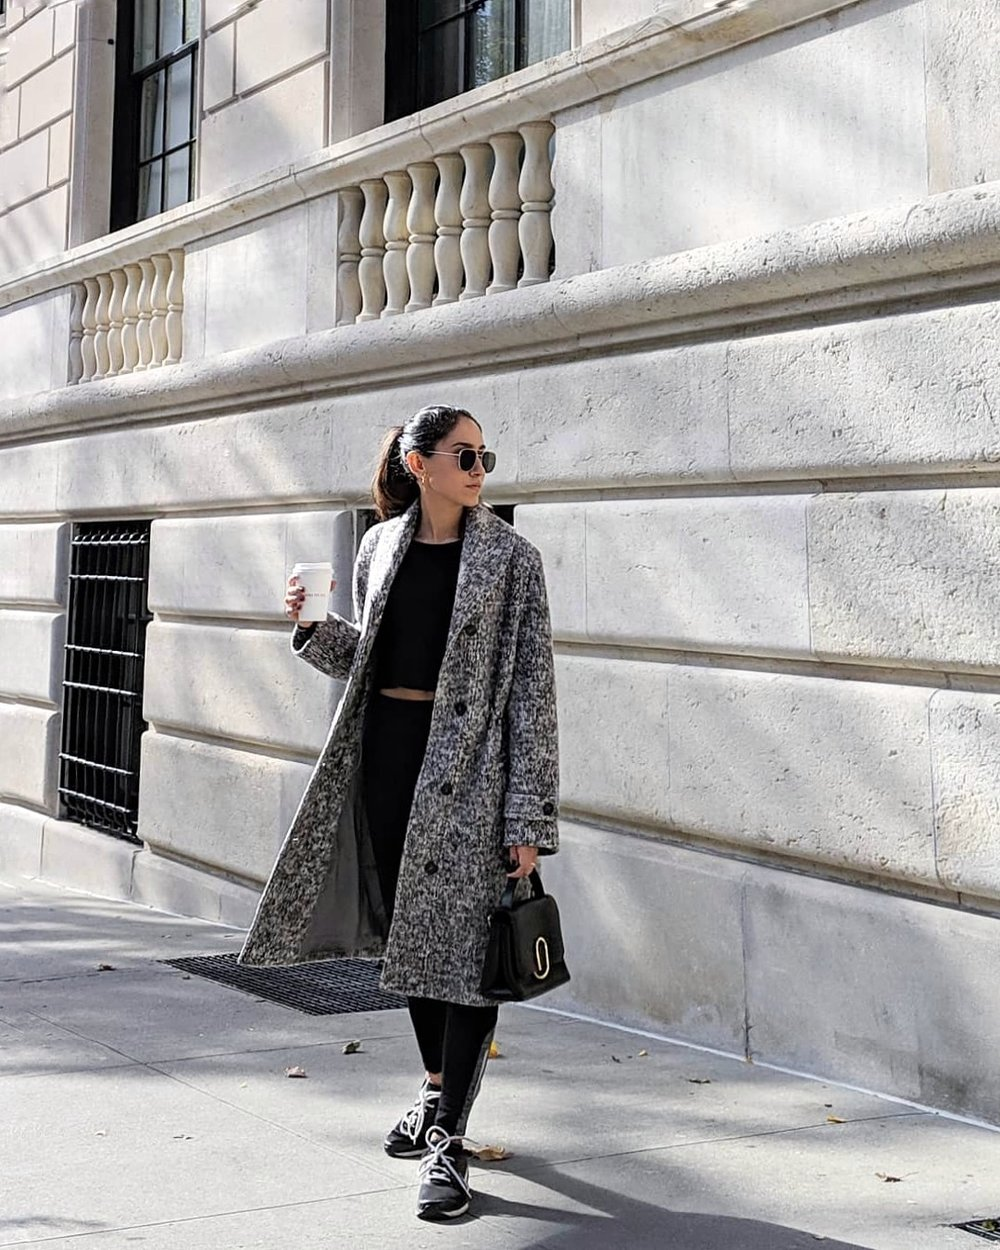 Wearing:  Halston Heritage   Coat   | F21   Crop Top   |  Yoga Pants |  Phillip Lim   Handbag